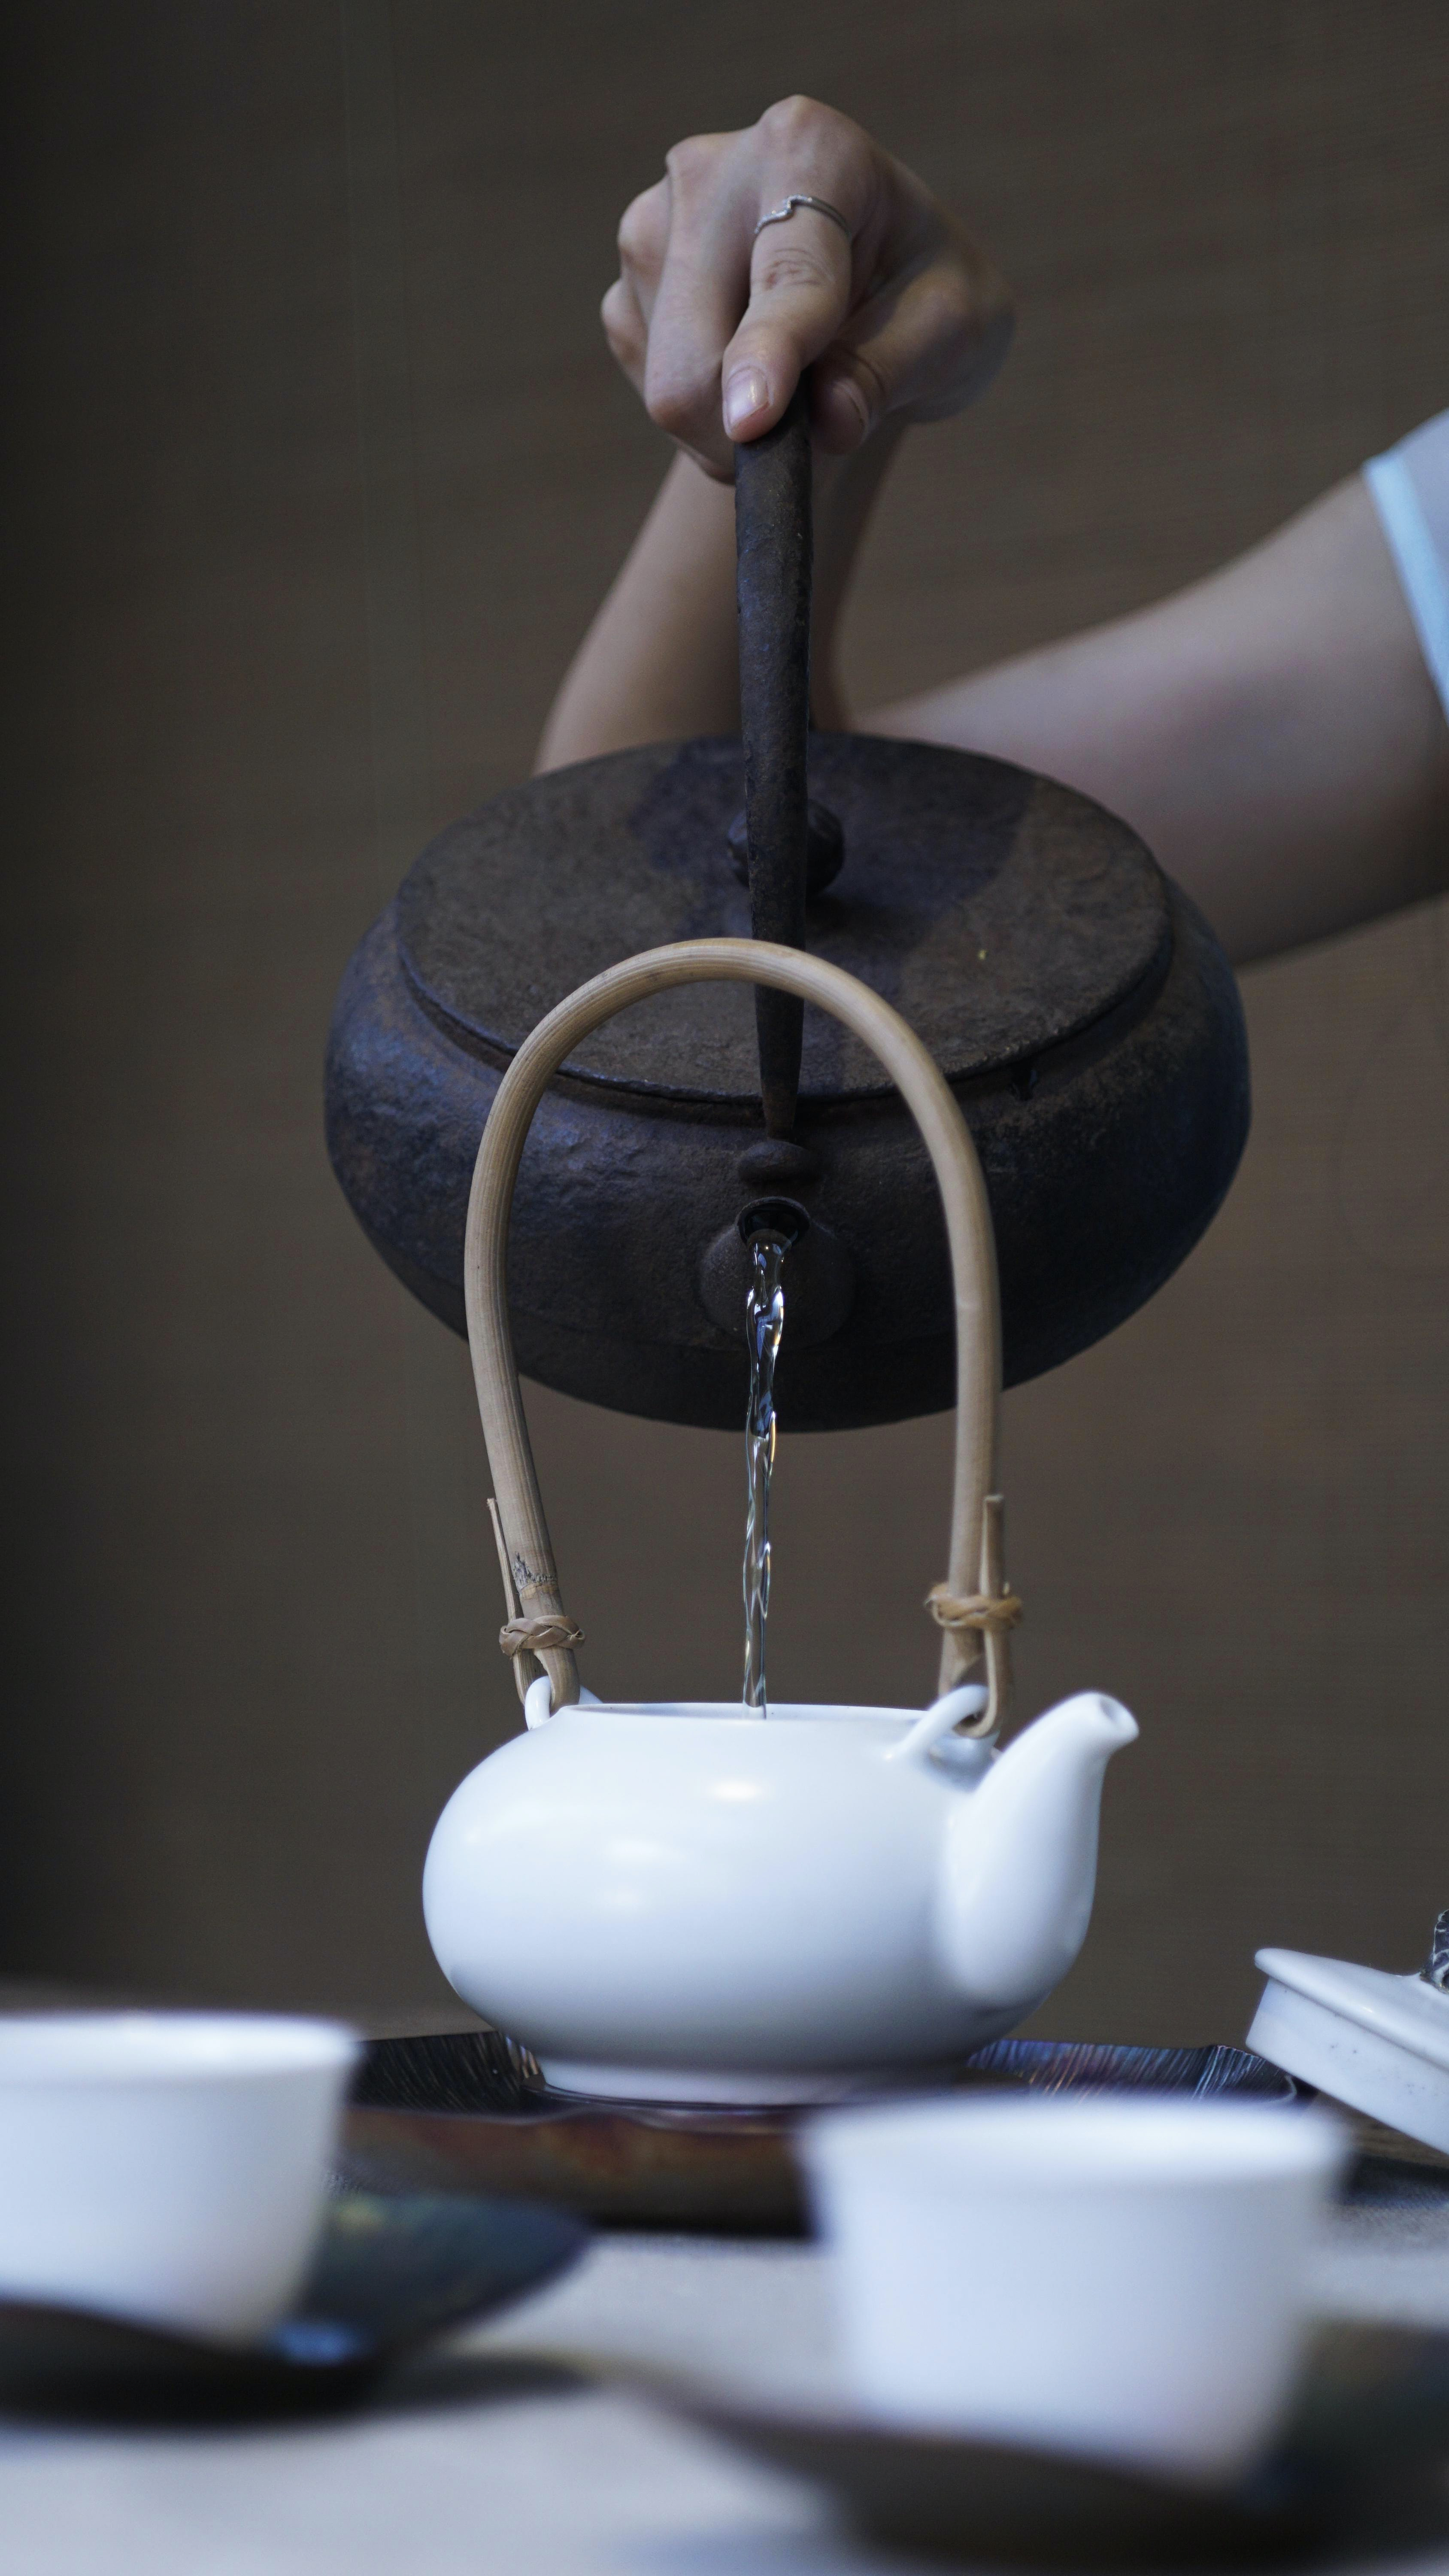 person pouring water on ceramic teapot